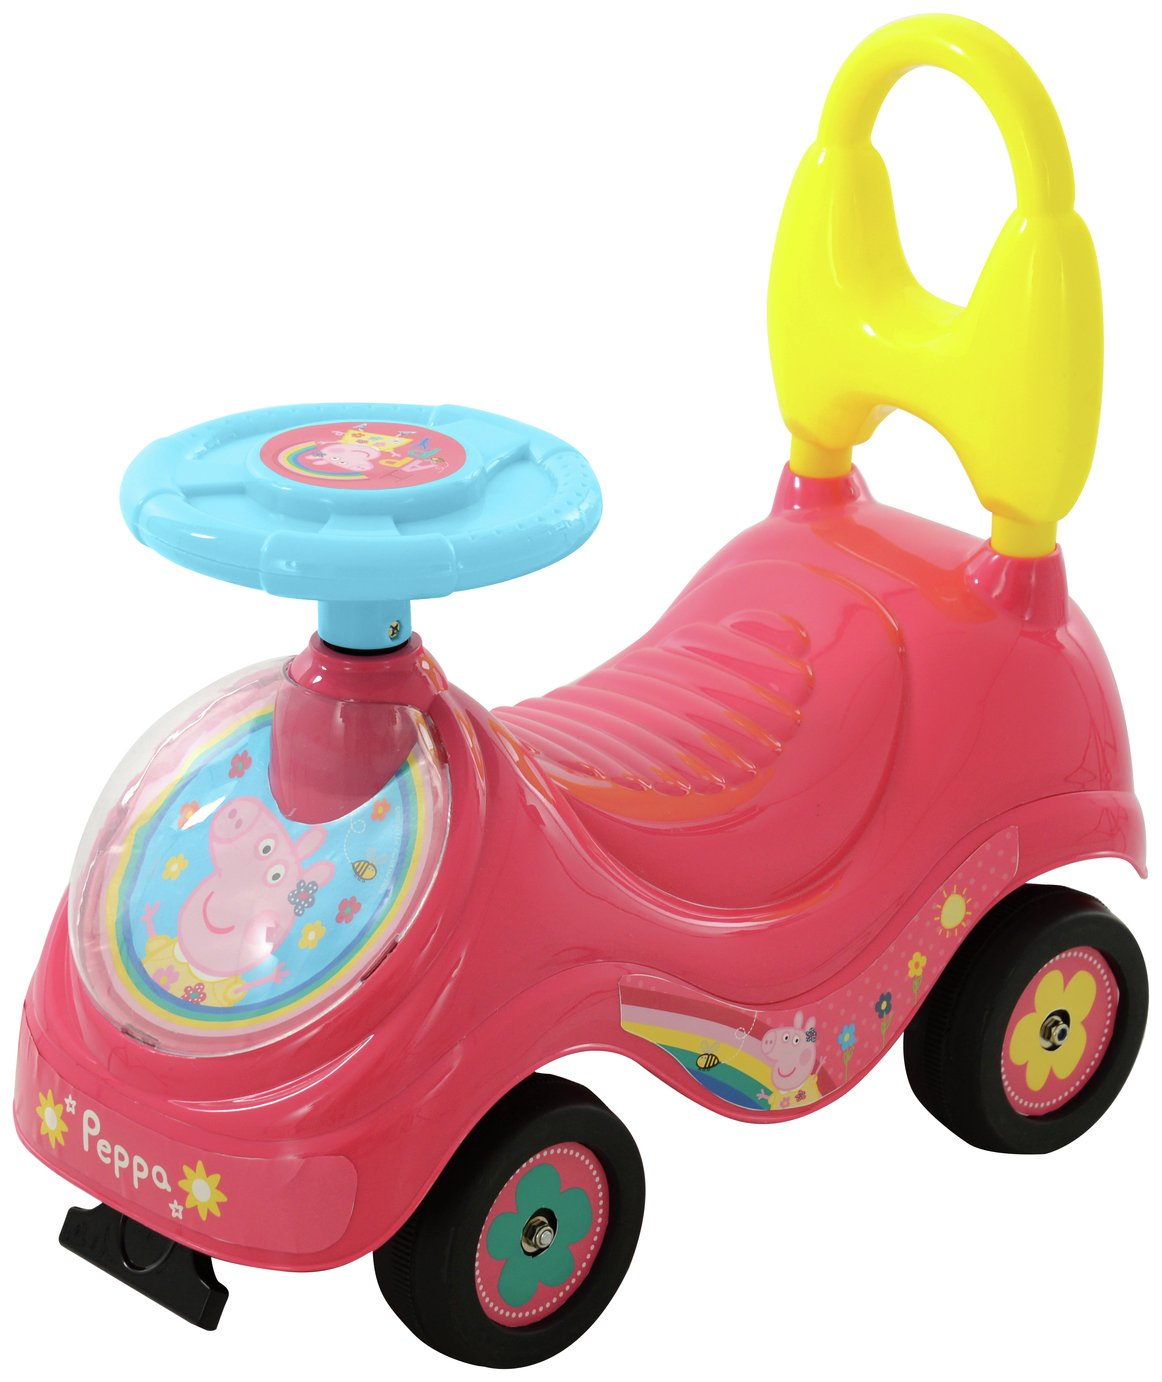 Peppa Pig - My First Sit and Ride from Peppa pig